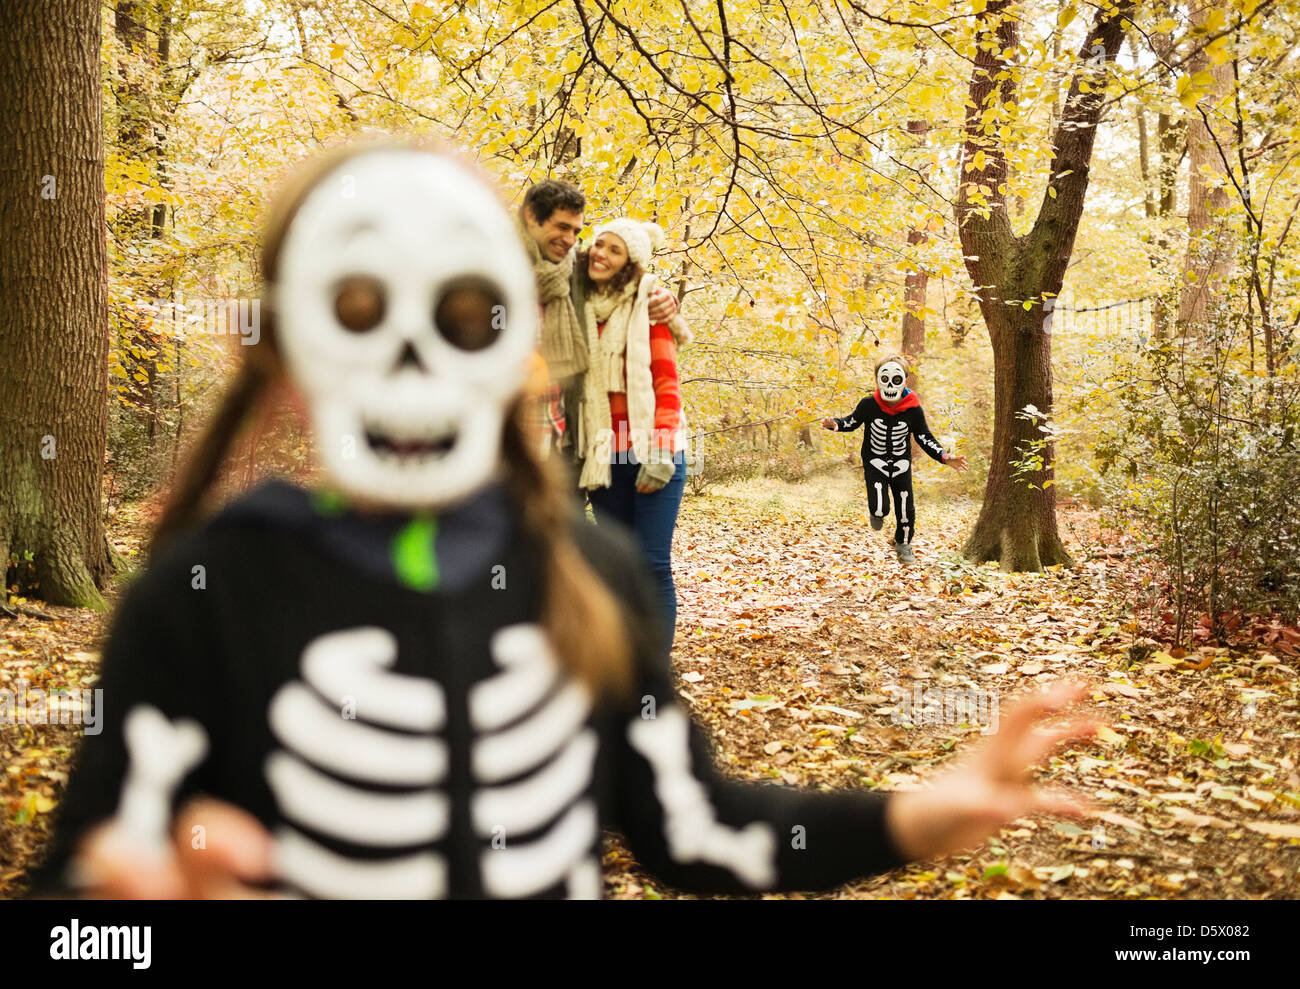 Children in skeleton costumes playing in park - Stock Image